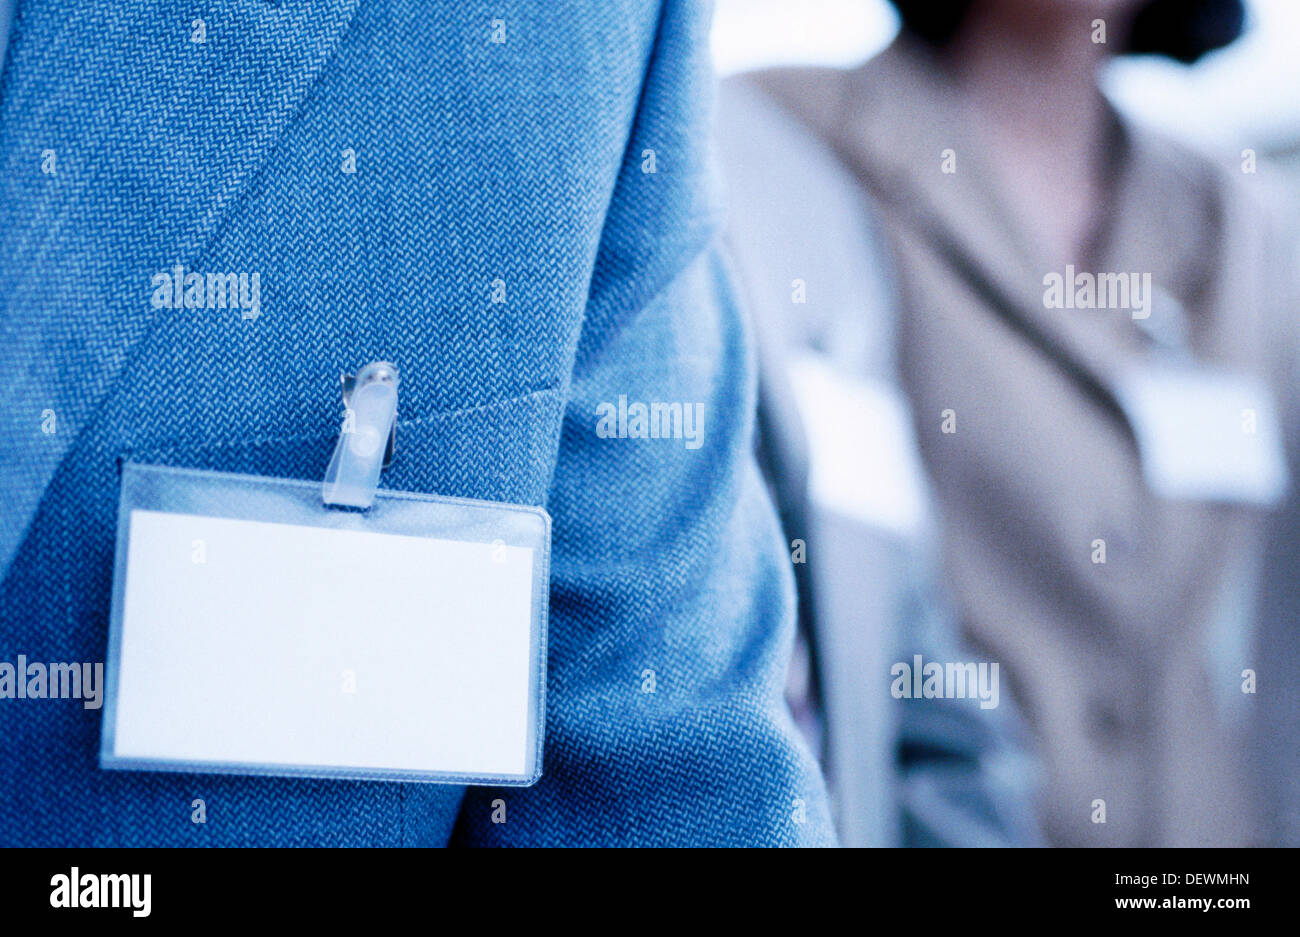 Business trade show, ID Cards - Stock Image